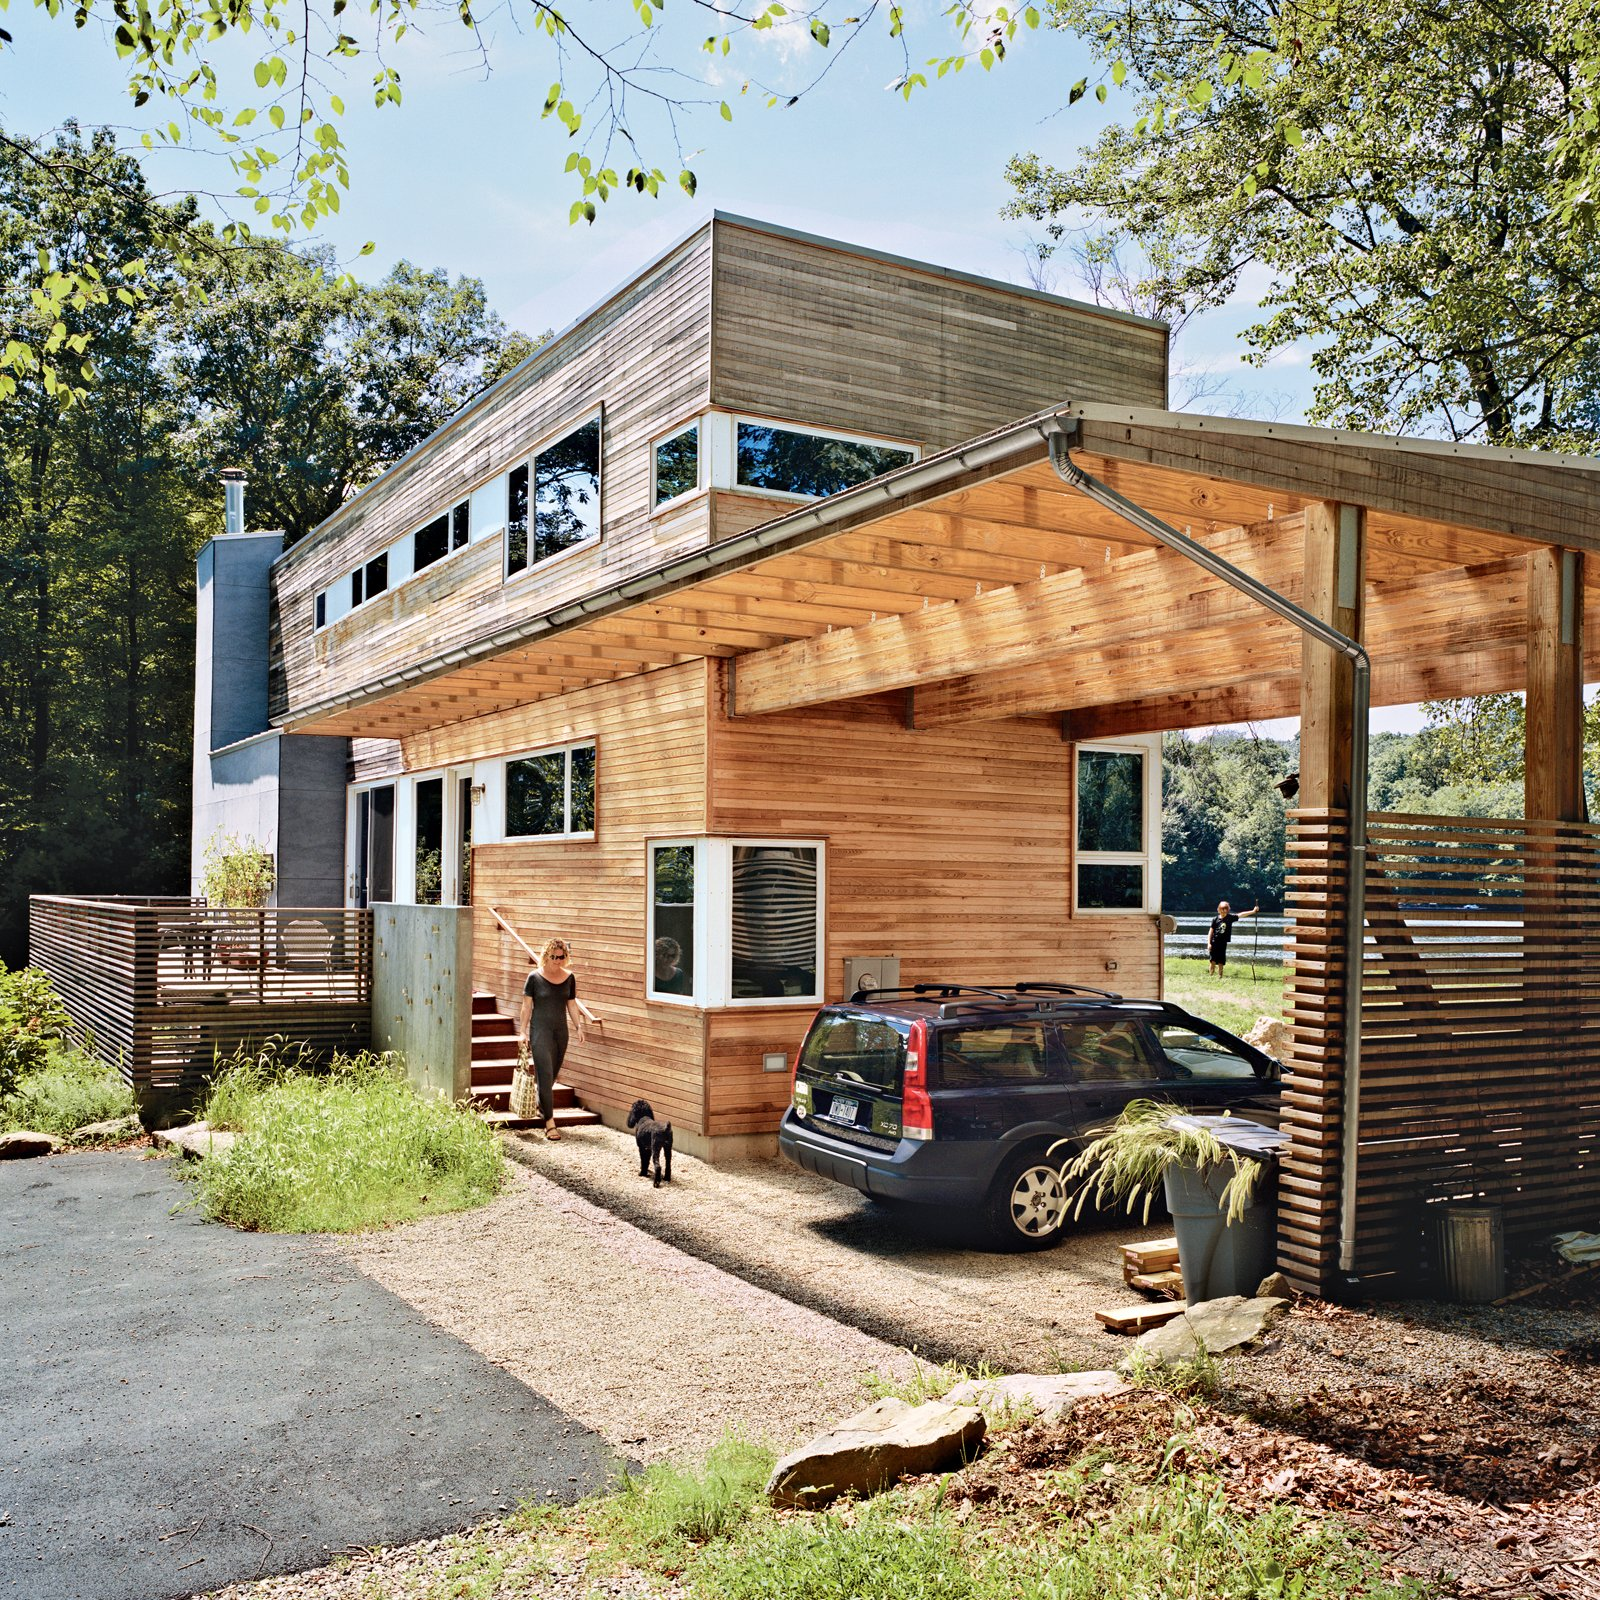 """Top 5 Houses on Dwell This Week  As the weekend slowly draws to a near, we've gathered up five of our most clicked on homes on Dwell this week for your perusal.  Search """"modern lakeside retreat stripped down basics"""" from Week in Review: 7 Great Stories You May Have Missed August 24, 2013"""